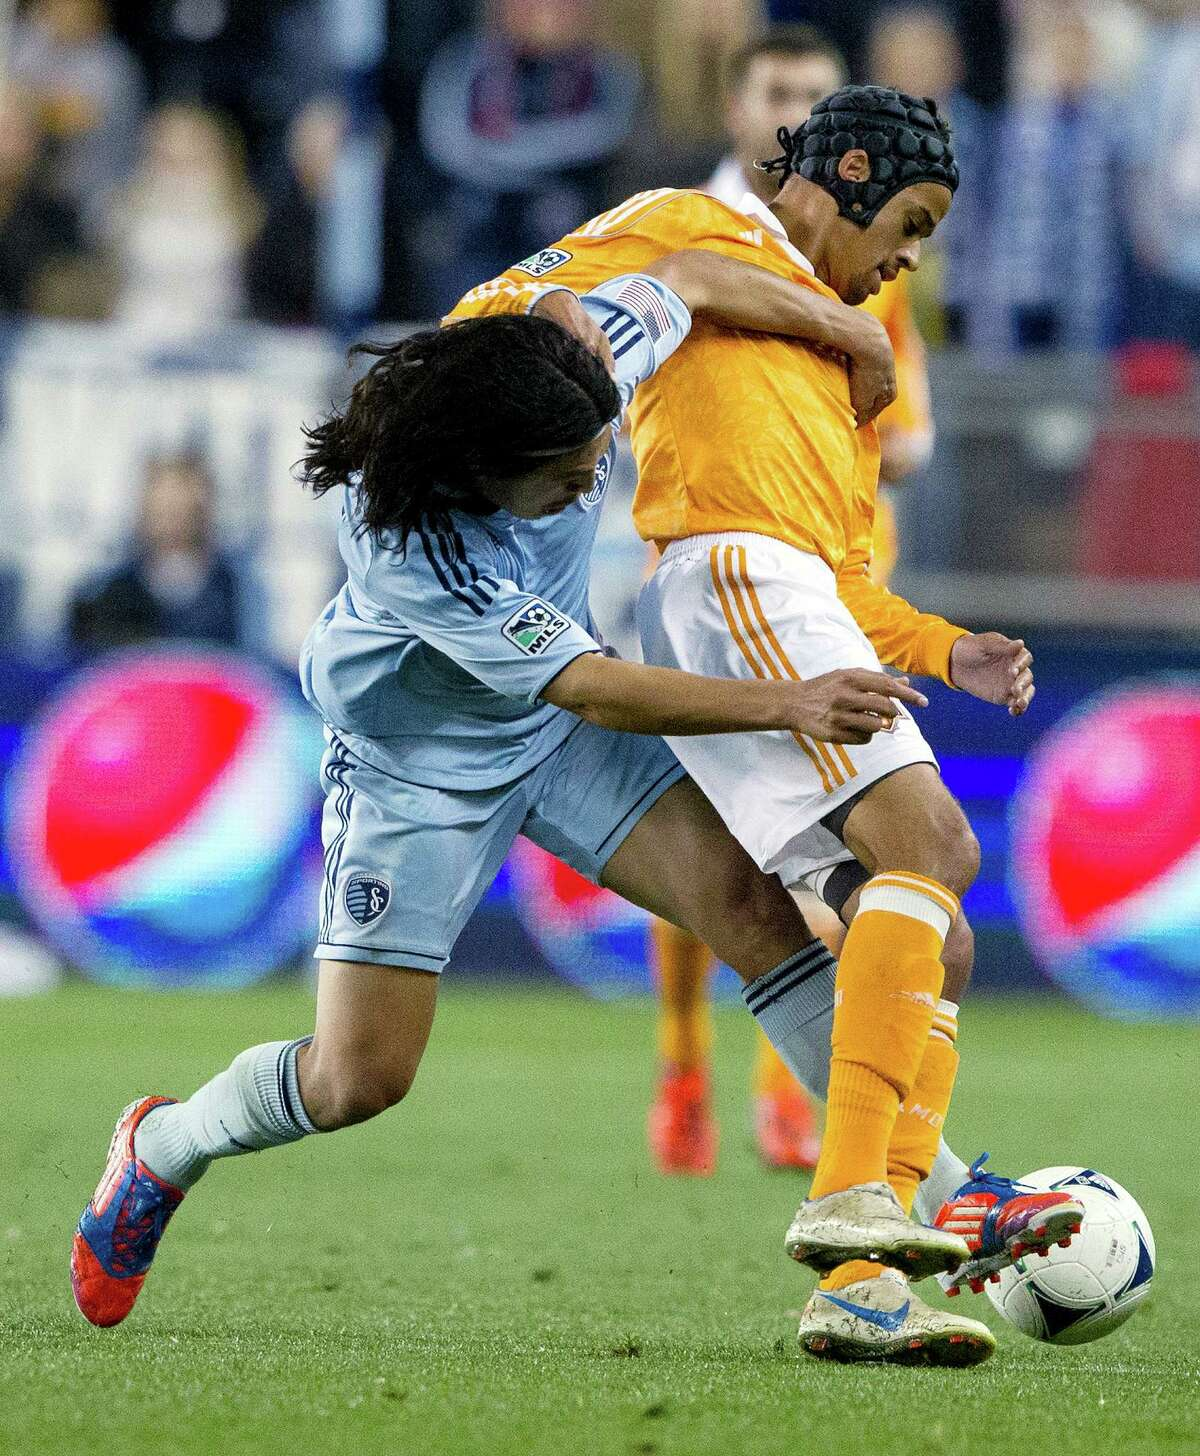 Sporting KC midfielder Roger Espinoza (15) wraps himself around Houston Dynamo forward Calen Carr (3) in the first half during Wednesday's MLS playoff soccer game on November 7, 2012, at Livestrong Sporting Park in Kansas City, Ks. John Sleezer/The Kansas City Star